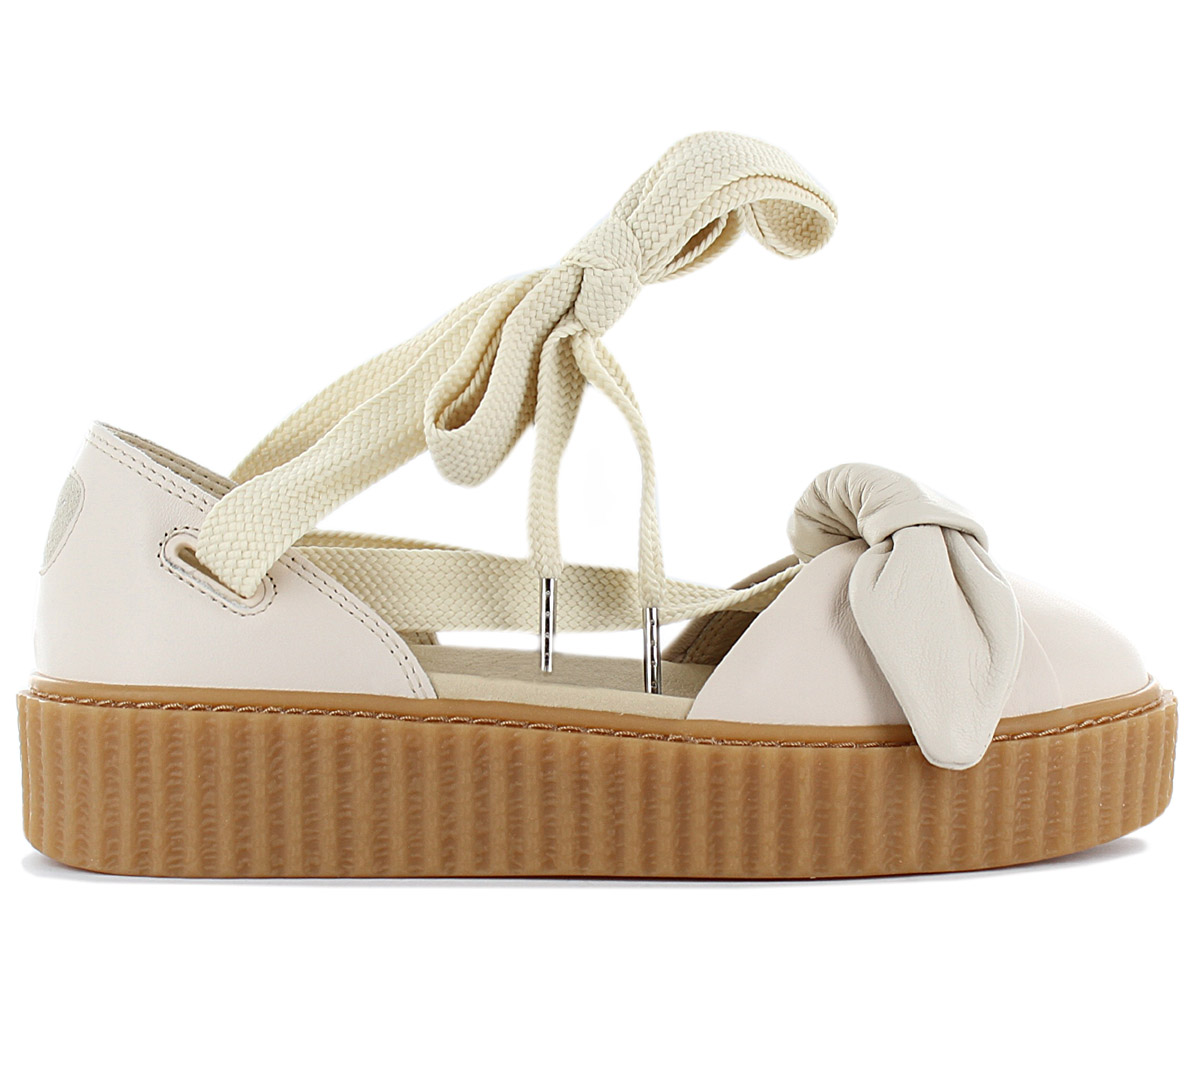 premium selection ea1d4 82978 Details about Fenty x Puma by Rihanna Creeper Bow Women's Sandals 365794-02  Sneaker Shoes New